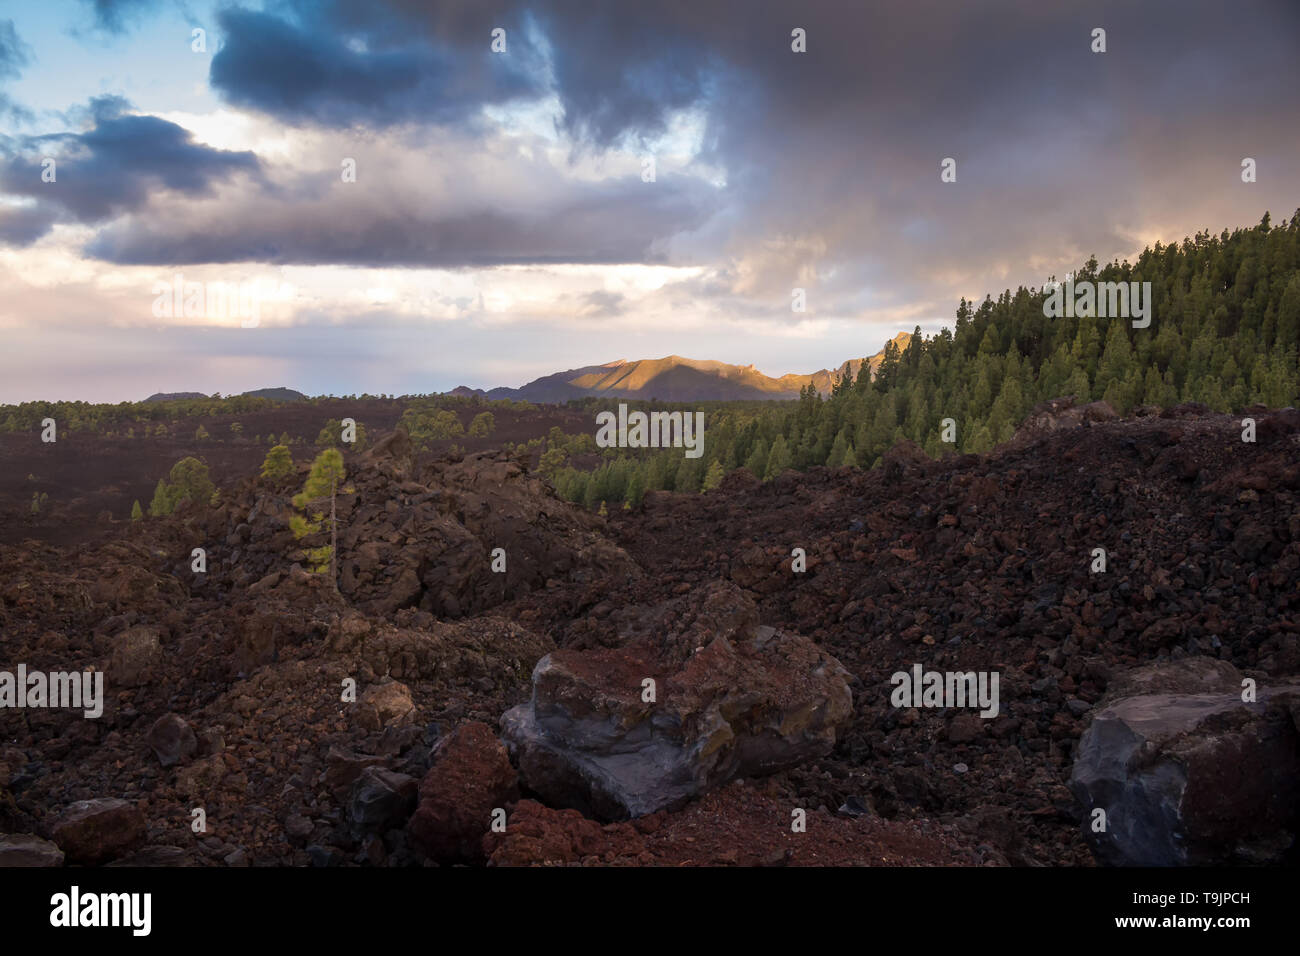 Road in Teide National Park, lined by hills with forests, created mostly by pines. Morning colorful sky with clouds. Tenerife, Canary Islands, Spain. - Stock Image